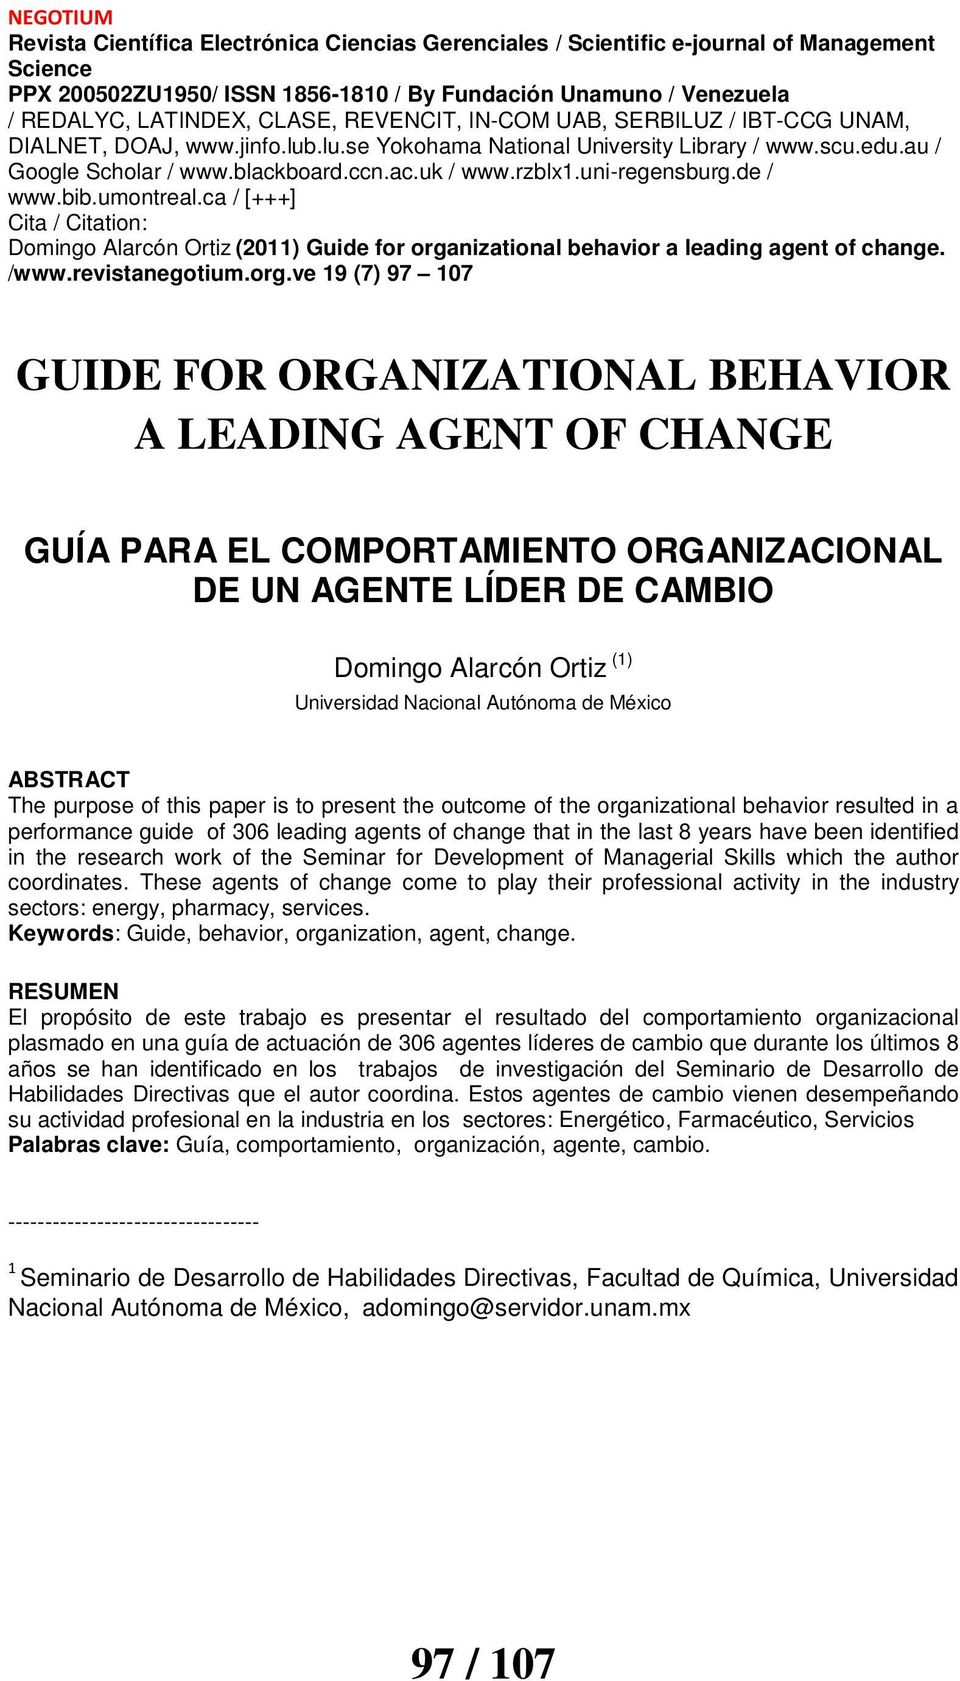 identified in the research work of the Seminar for Development of Managerial Skills which the author coordinates.